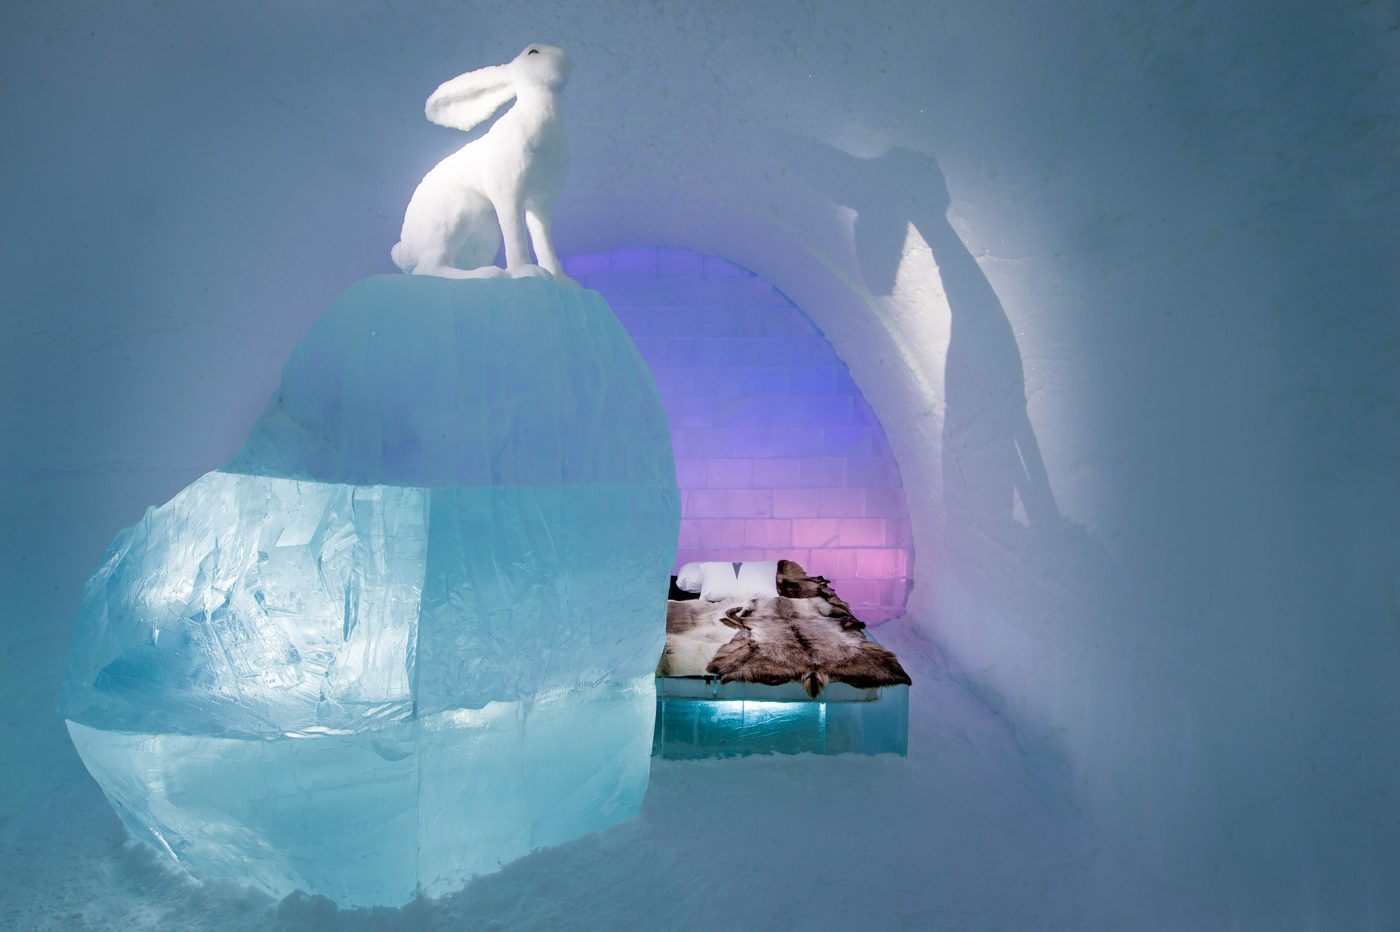 art-suite-follow-the-white-rabbit-icehotel-28-1400x932.jpg